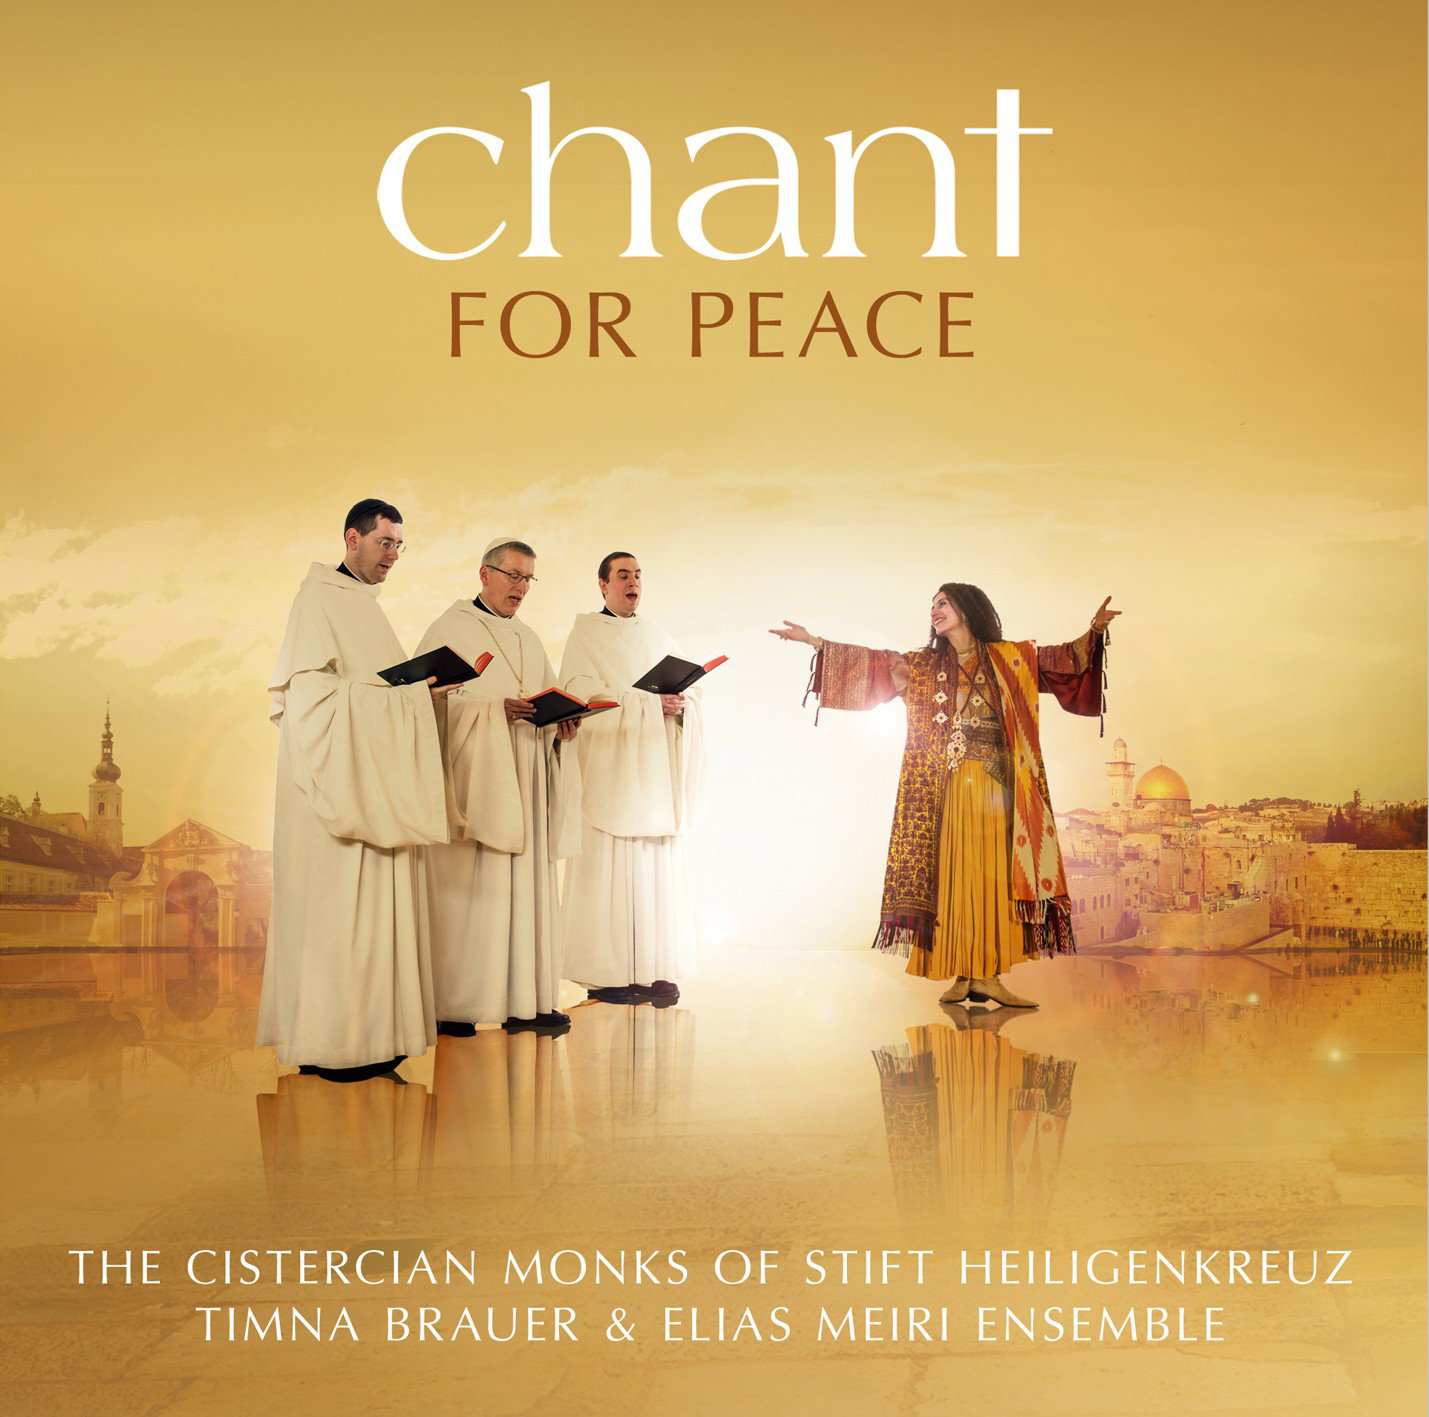 Chant for Peace: The Cistercian Monks of Stift Heiligenkreuz Timna Brauer & Elias Meiri Ensemble